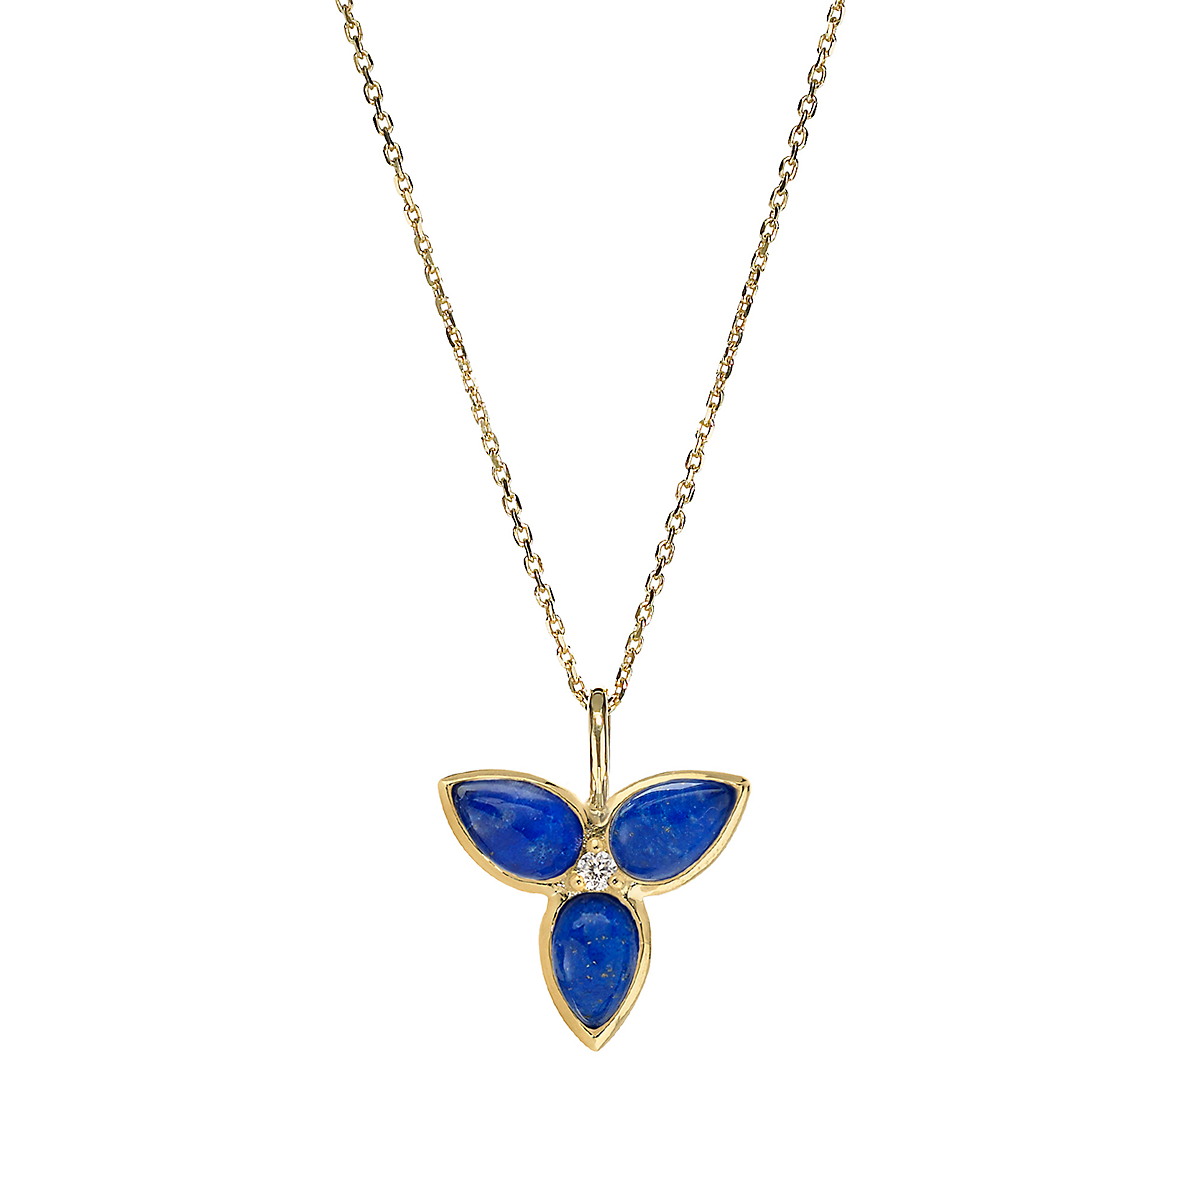 Elizabeth Showers Lapis Quartz & Diamond Mini Mariposa Pendant & Chain